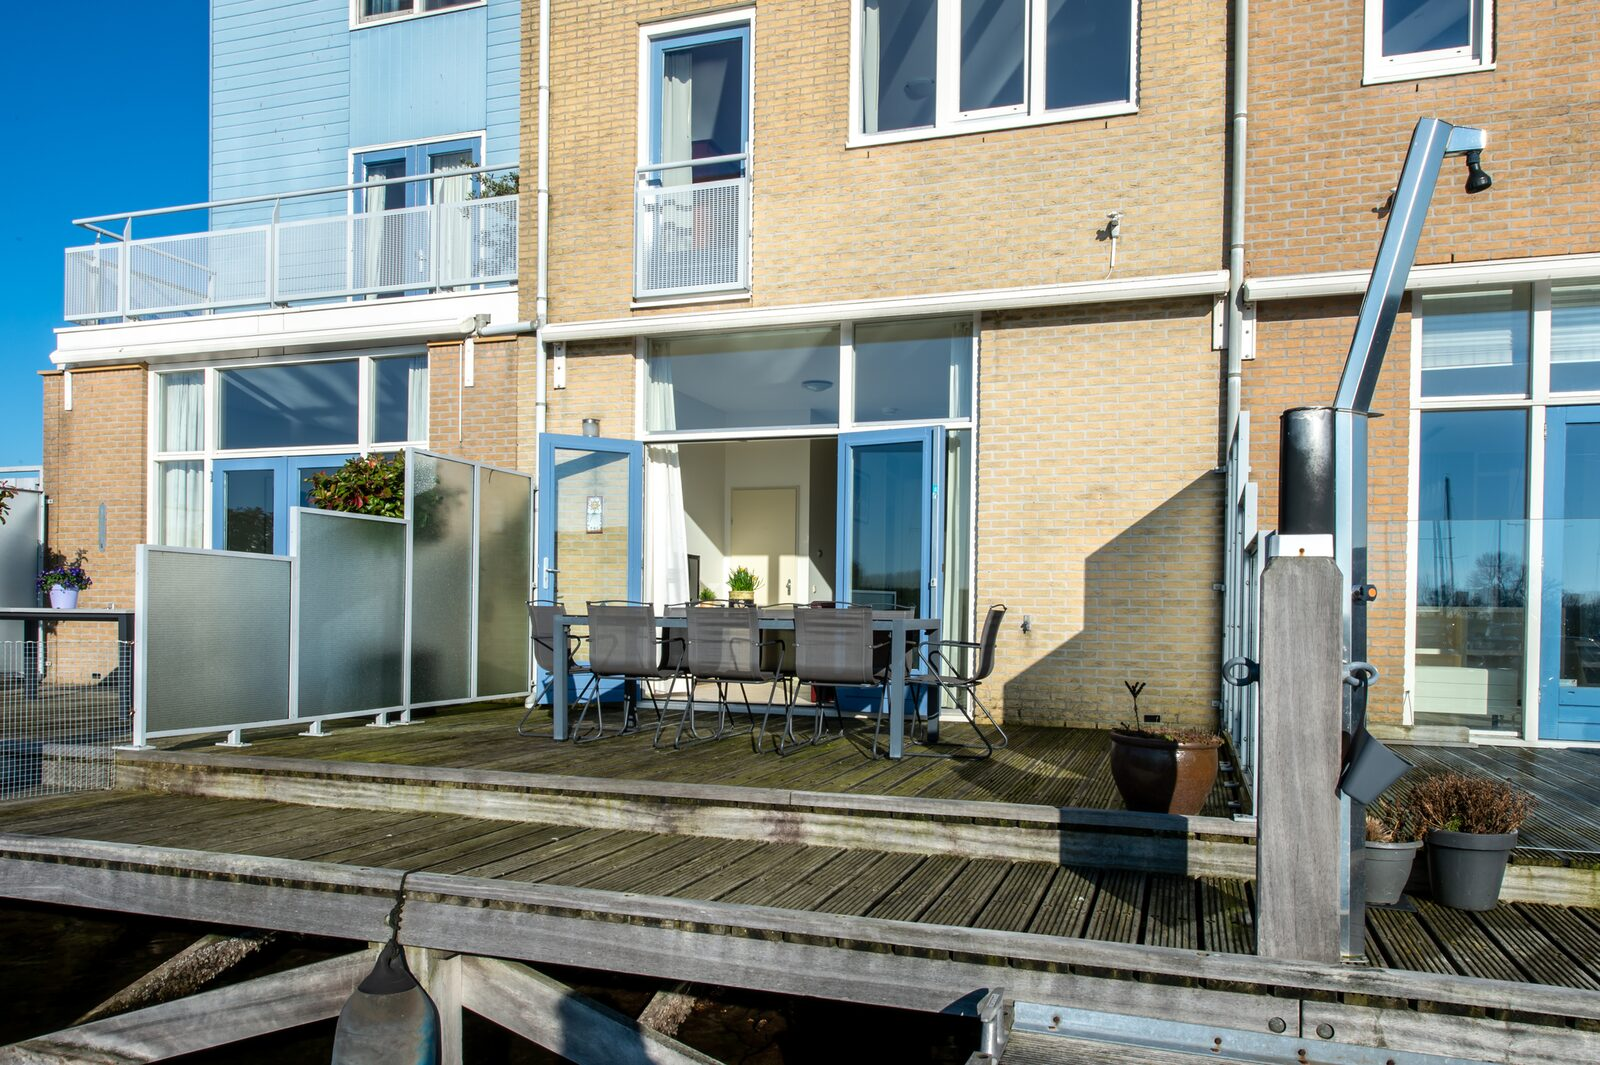 Beurtschippersstraat 28 | Kortgene Haven